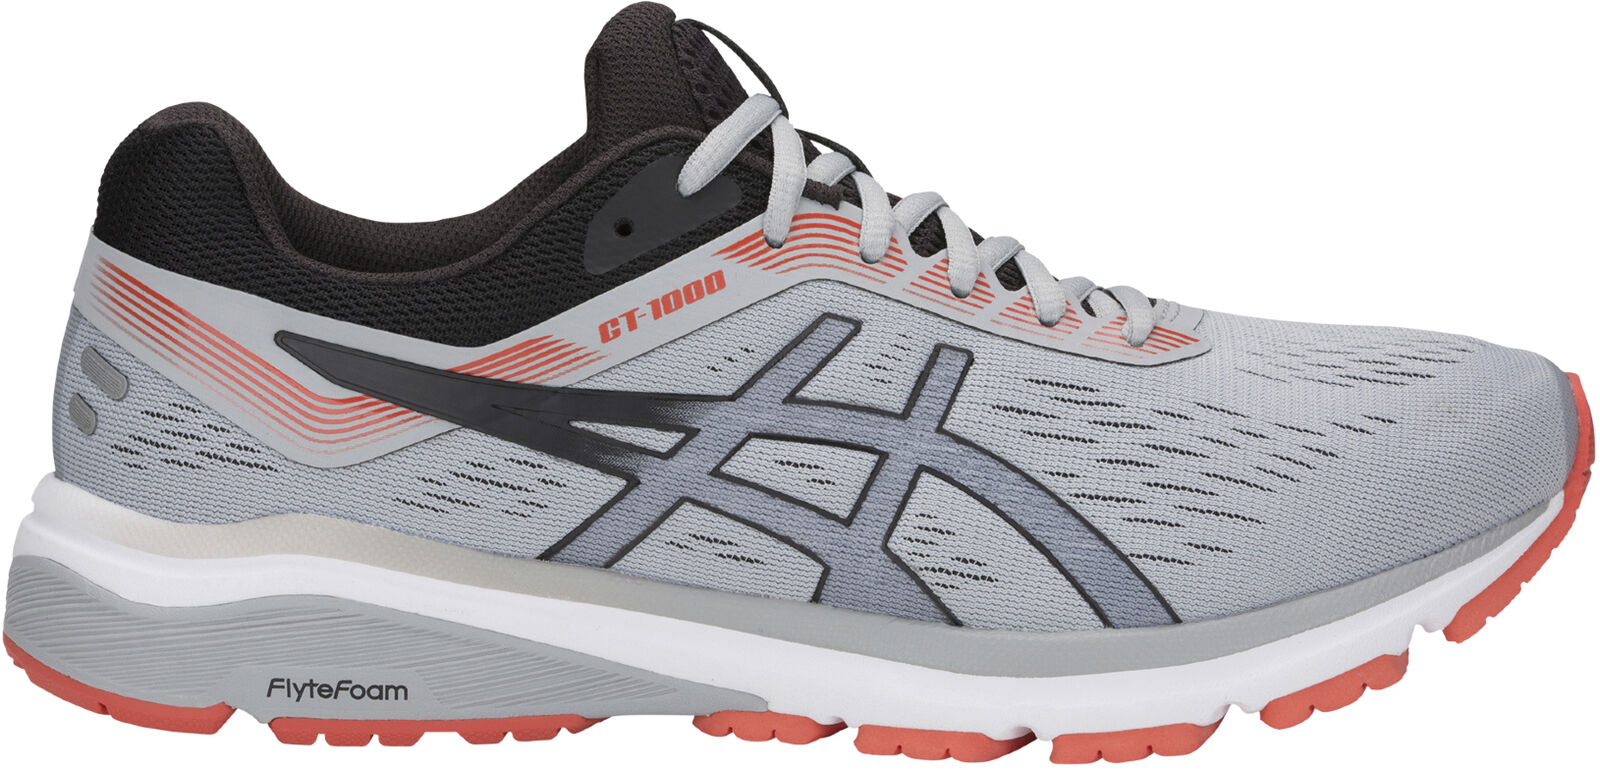 Asics GT 1000 7 Mens Running shoes  - Grey  find your favorite here